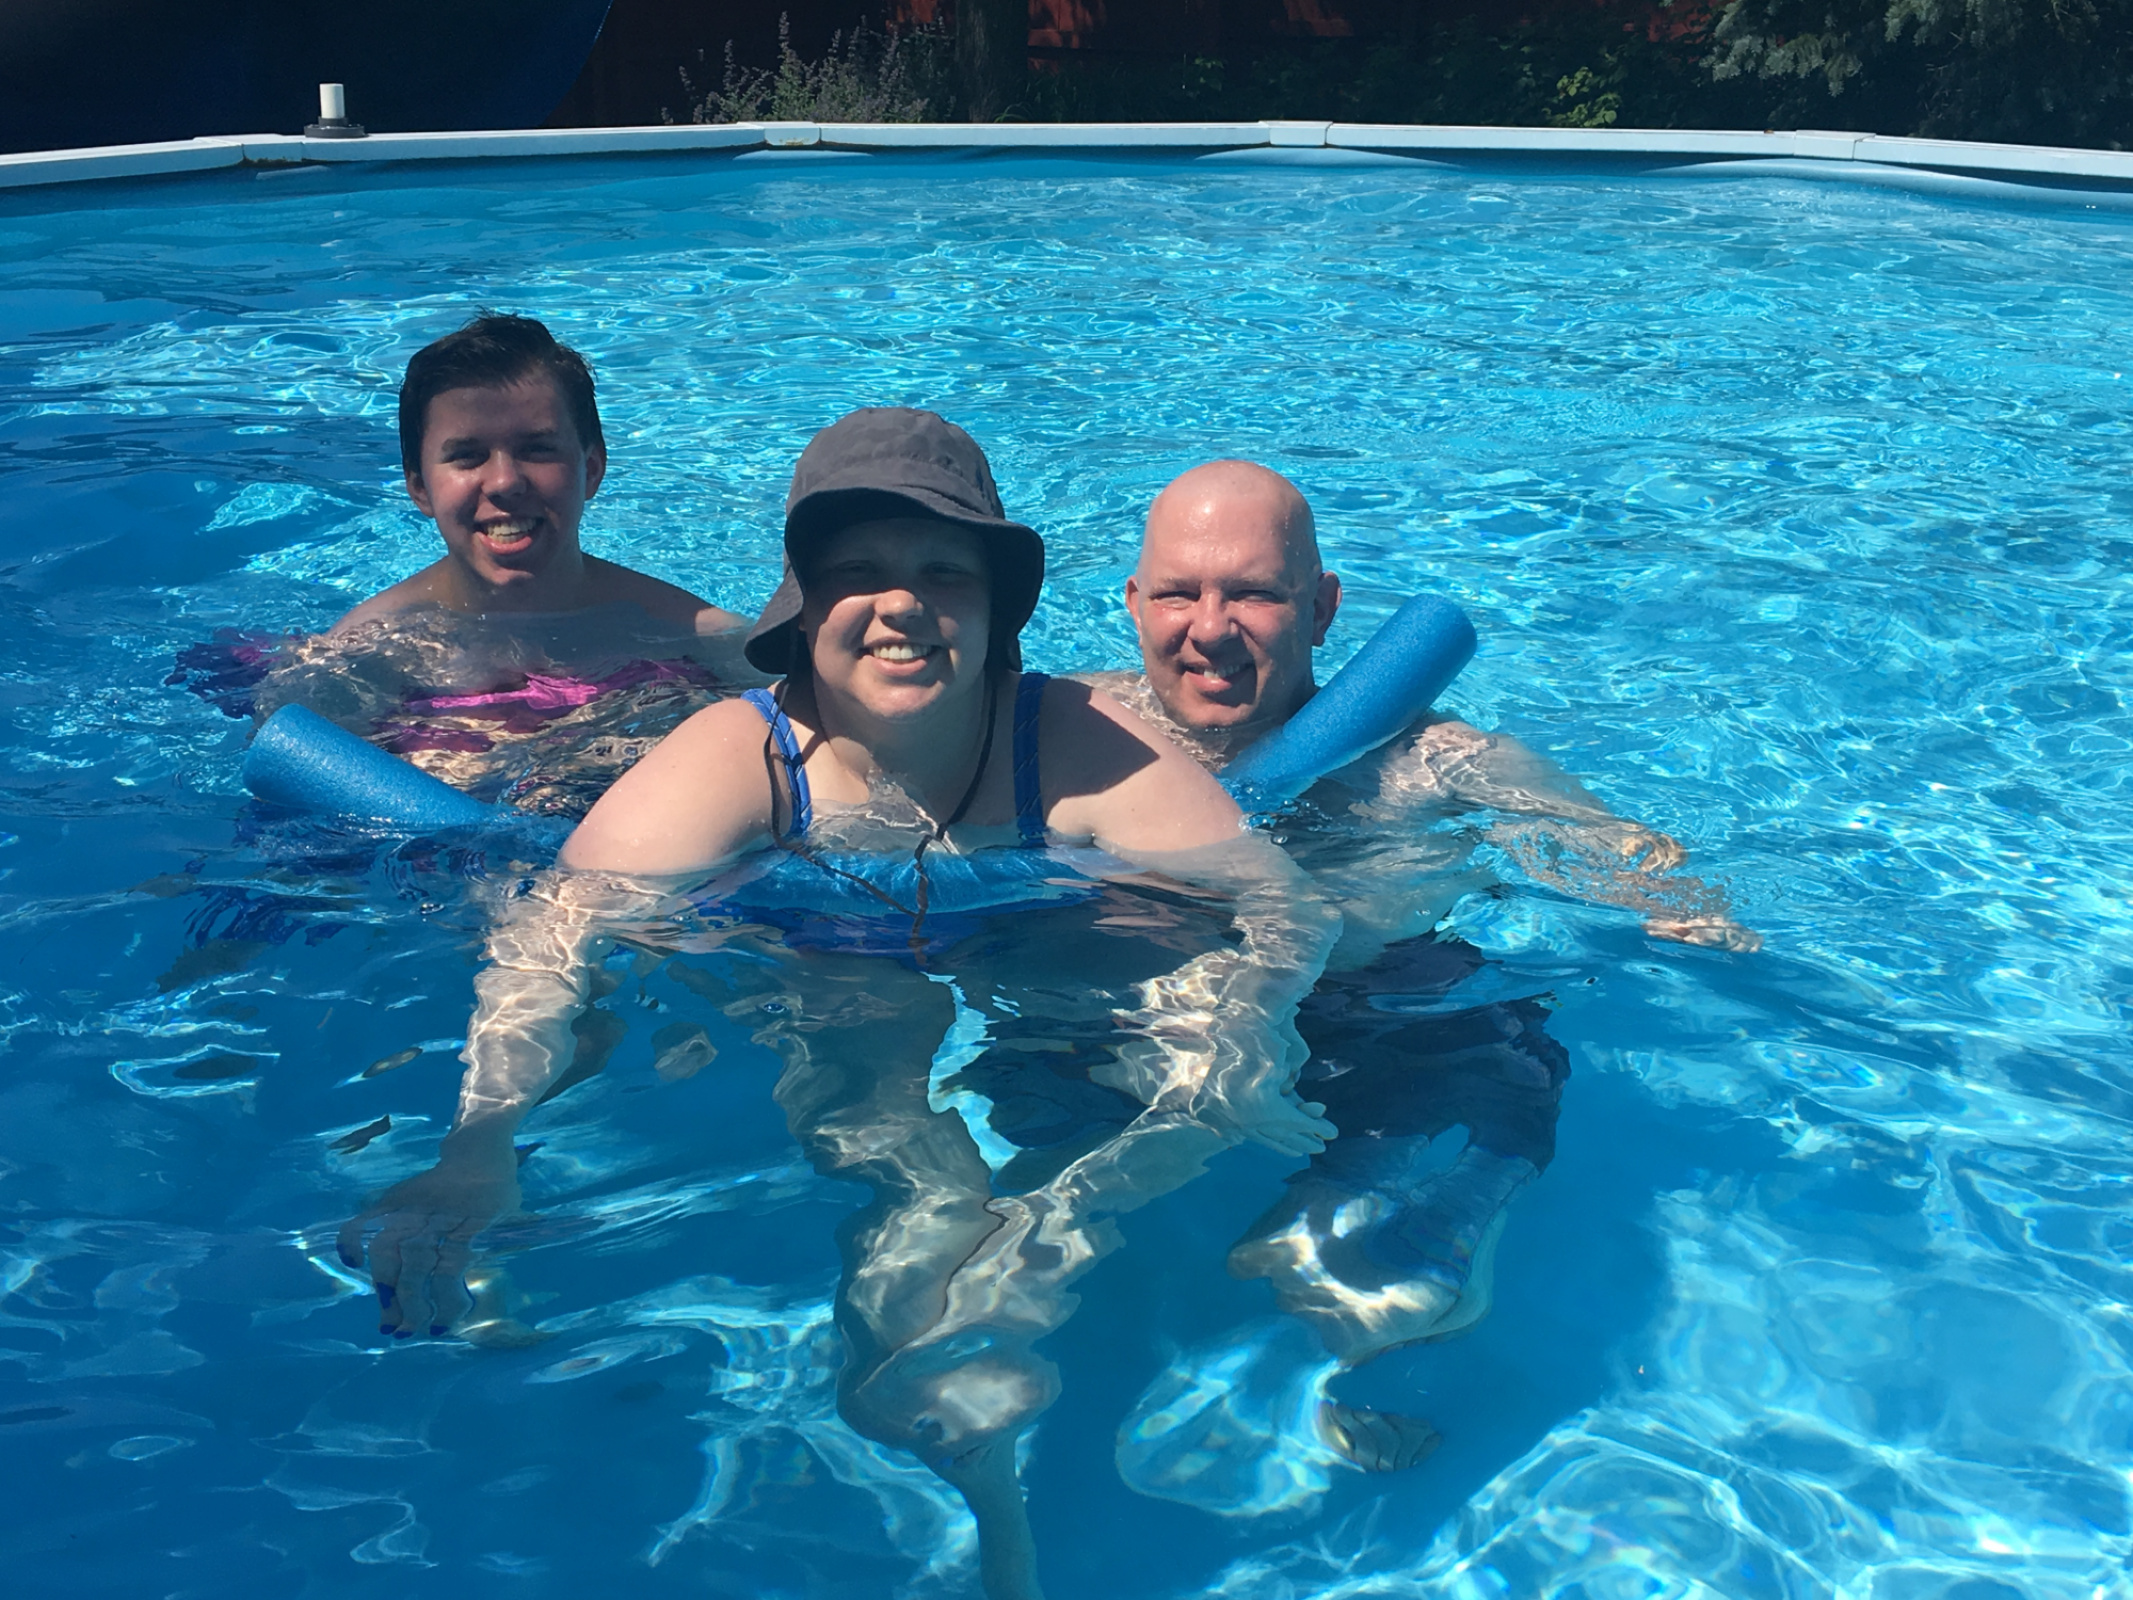 I somehow managed to get in the pool with dad, mom and Quinn's help. It was so relaxing and fun to be outside.